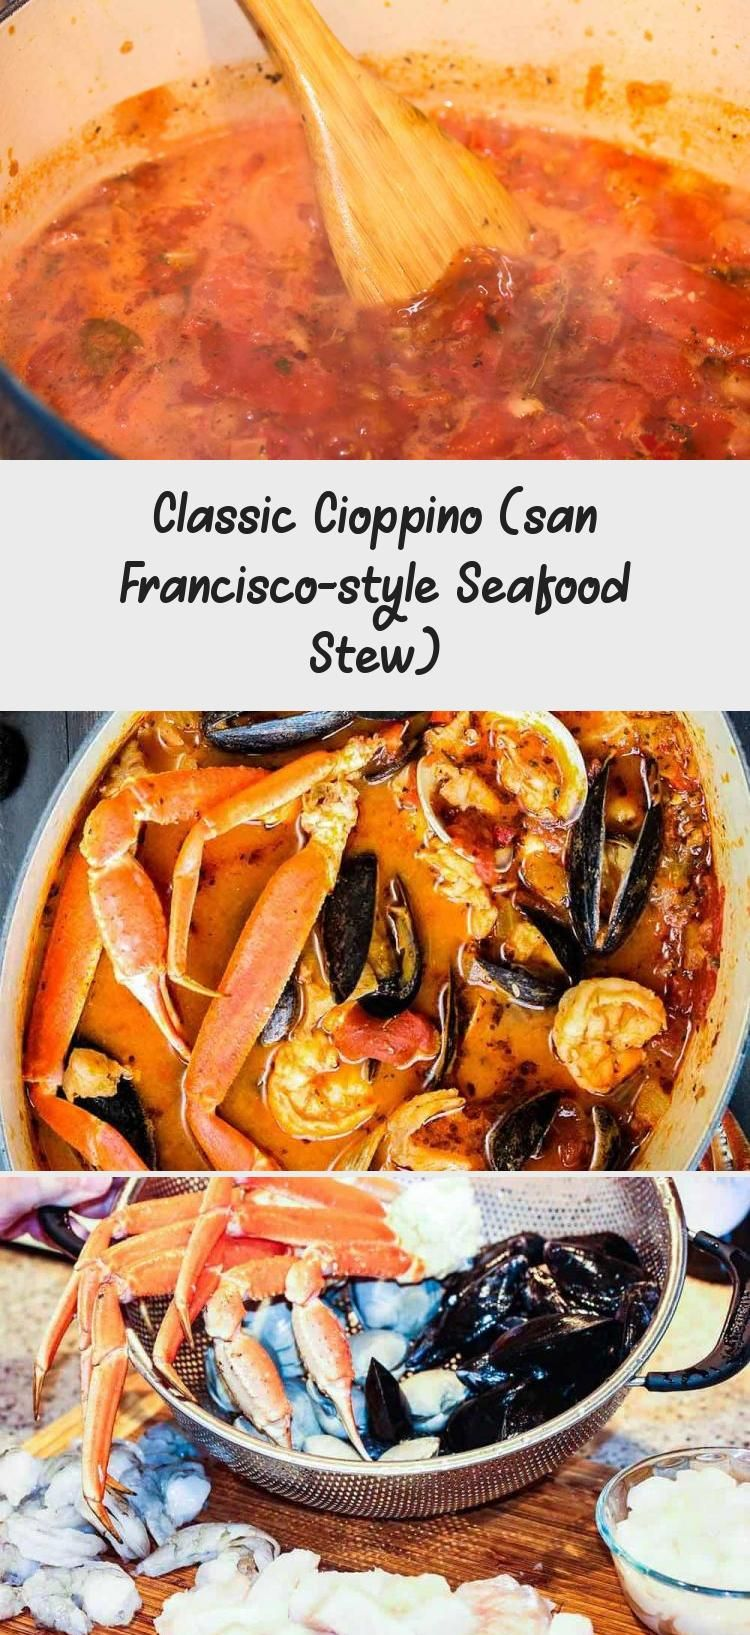 Classic Cioppino is an amazing Italian-American seafood stew made famous in San Francisco. Surprisingly easy to make, this is just amazing! #BestSeafoodRecipes #SpicySeafoodRecipes #SeafoodRecipesCopycat #SeafoodRecipesRomantic #SeafoodRecipesLobster #seafoodstew